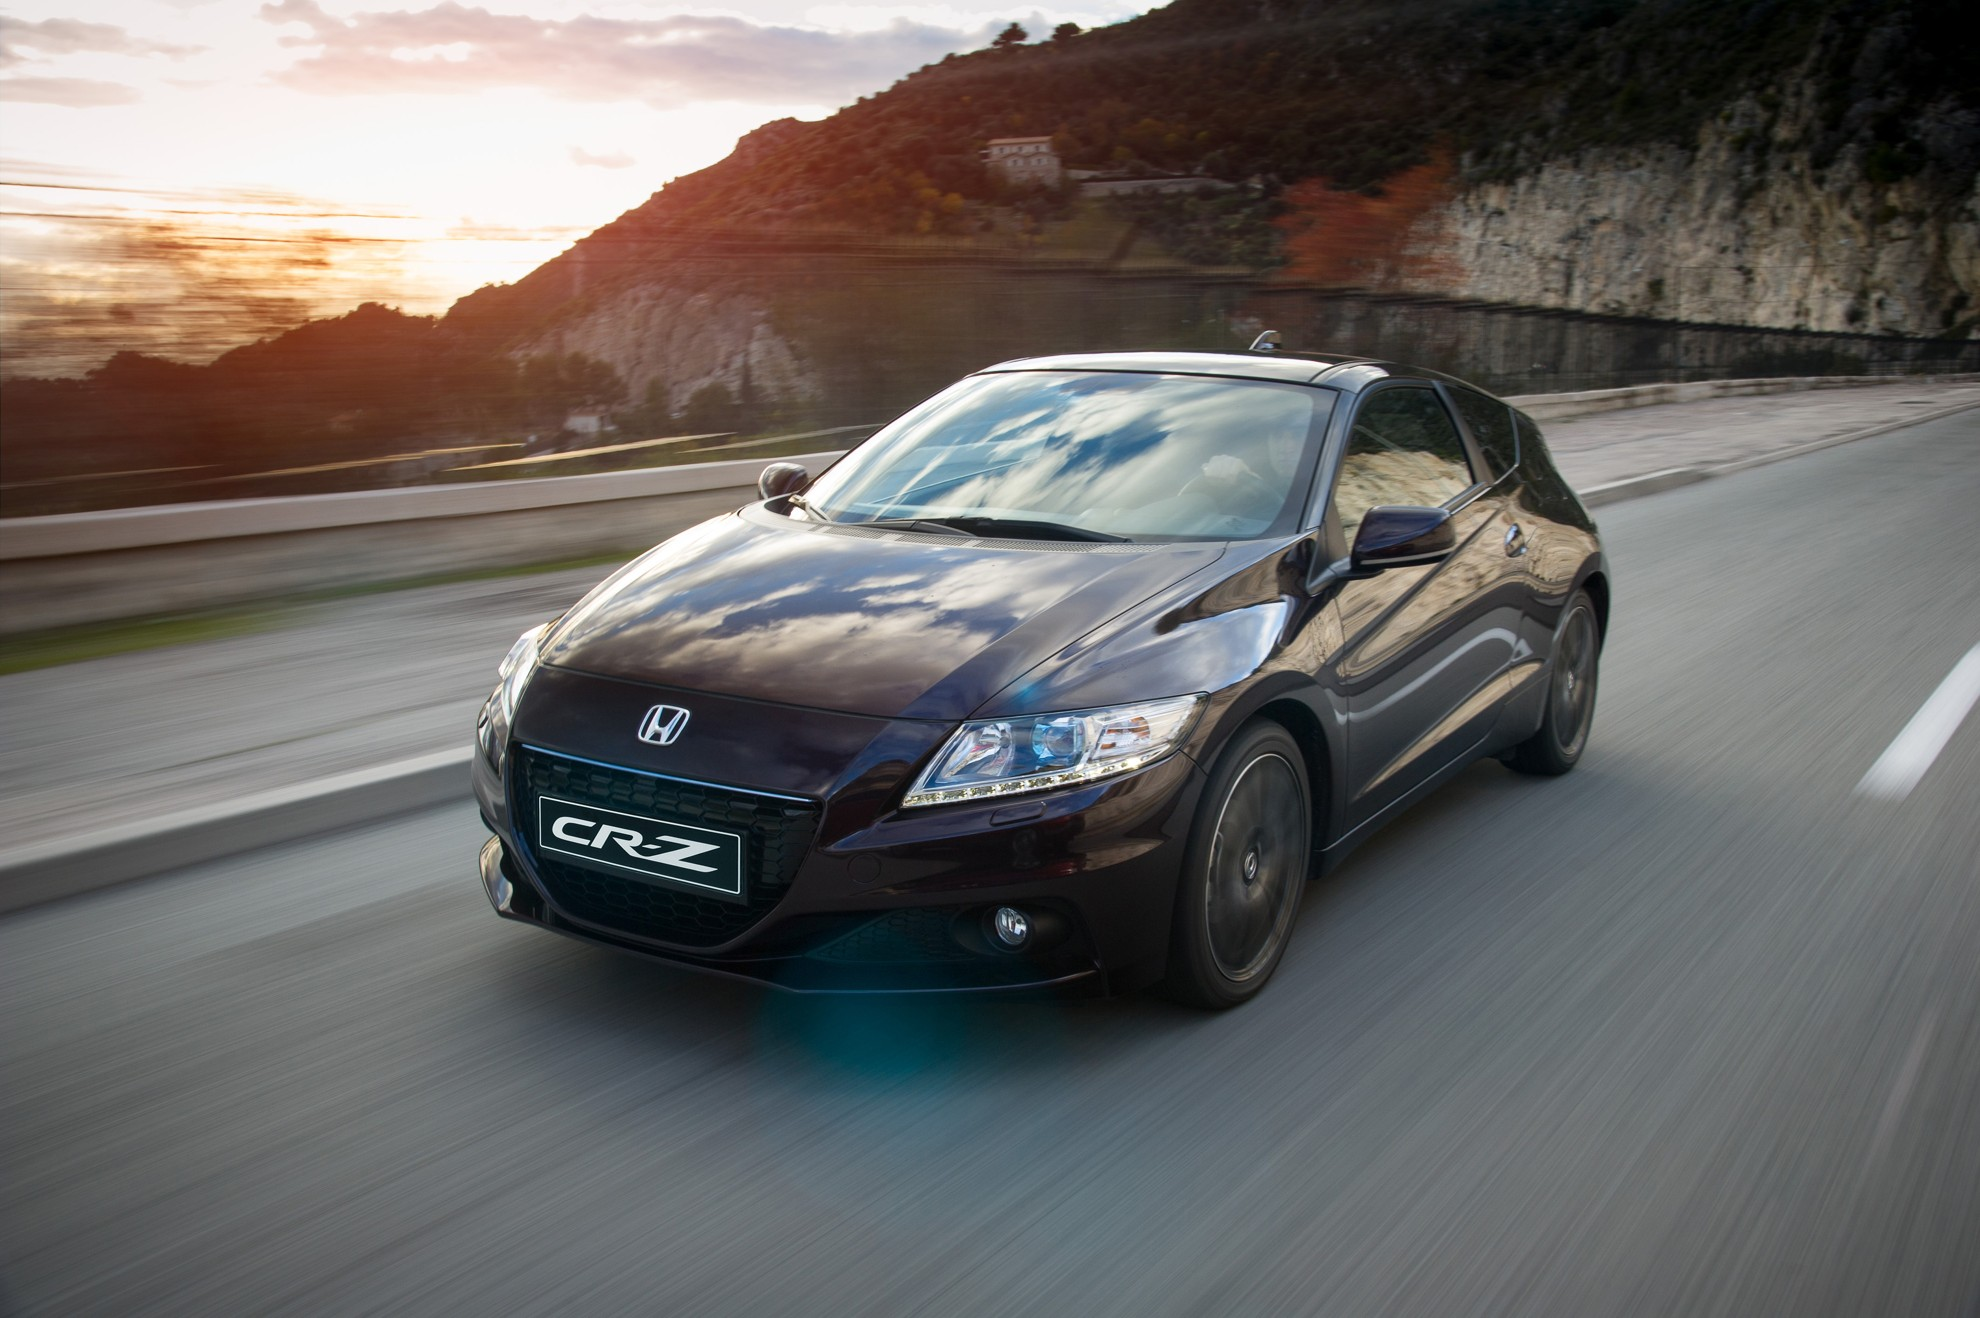 Honda-CR-Z South Africa